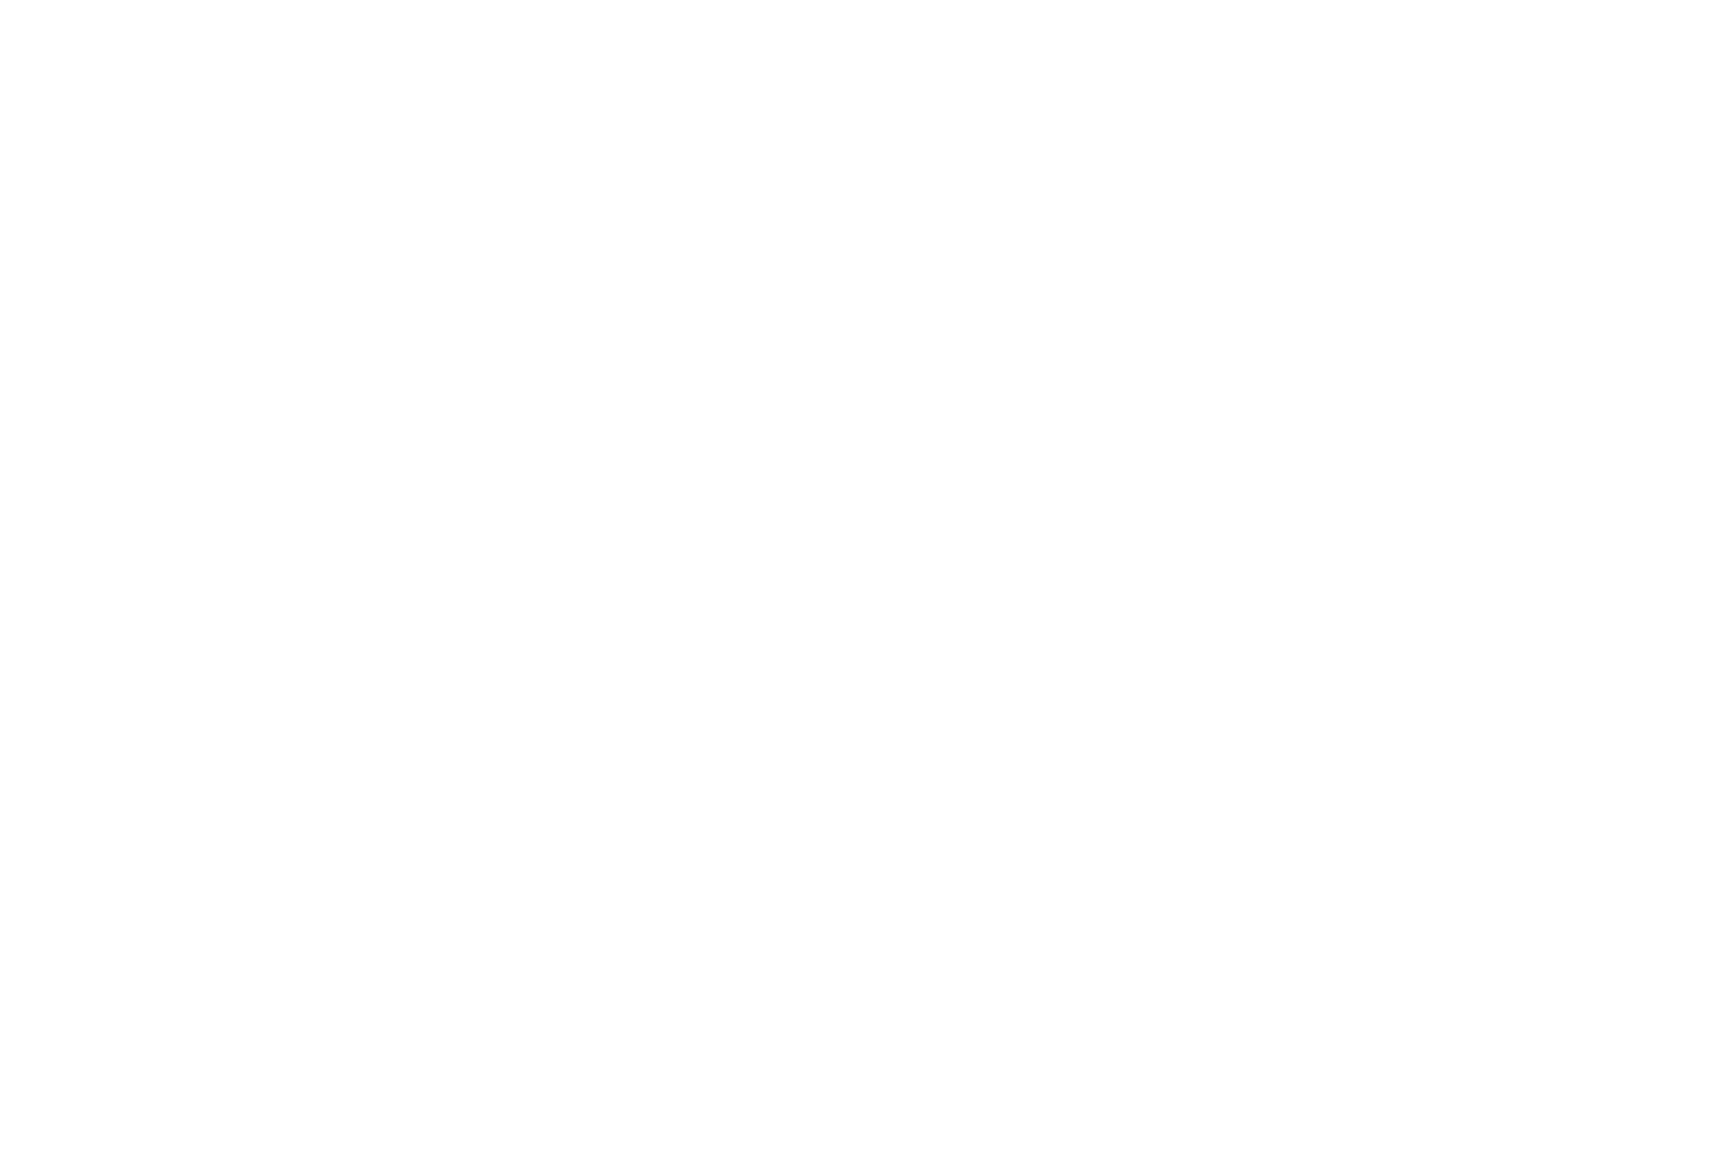 Caribbean Spirit Award - Caribbean Tales International Film Festival - 2018.png